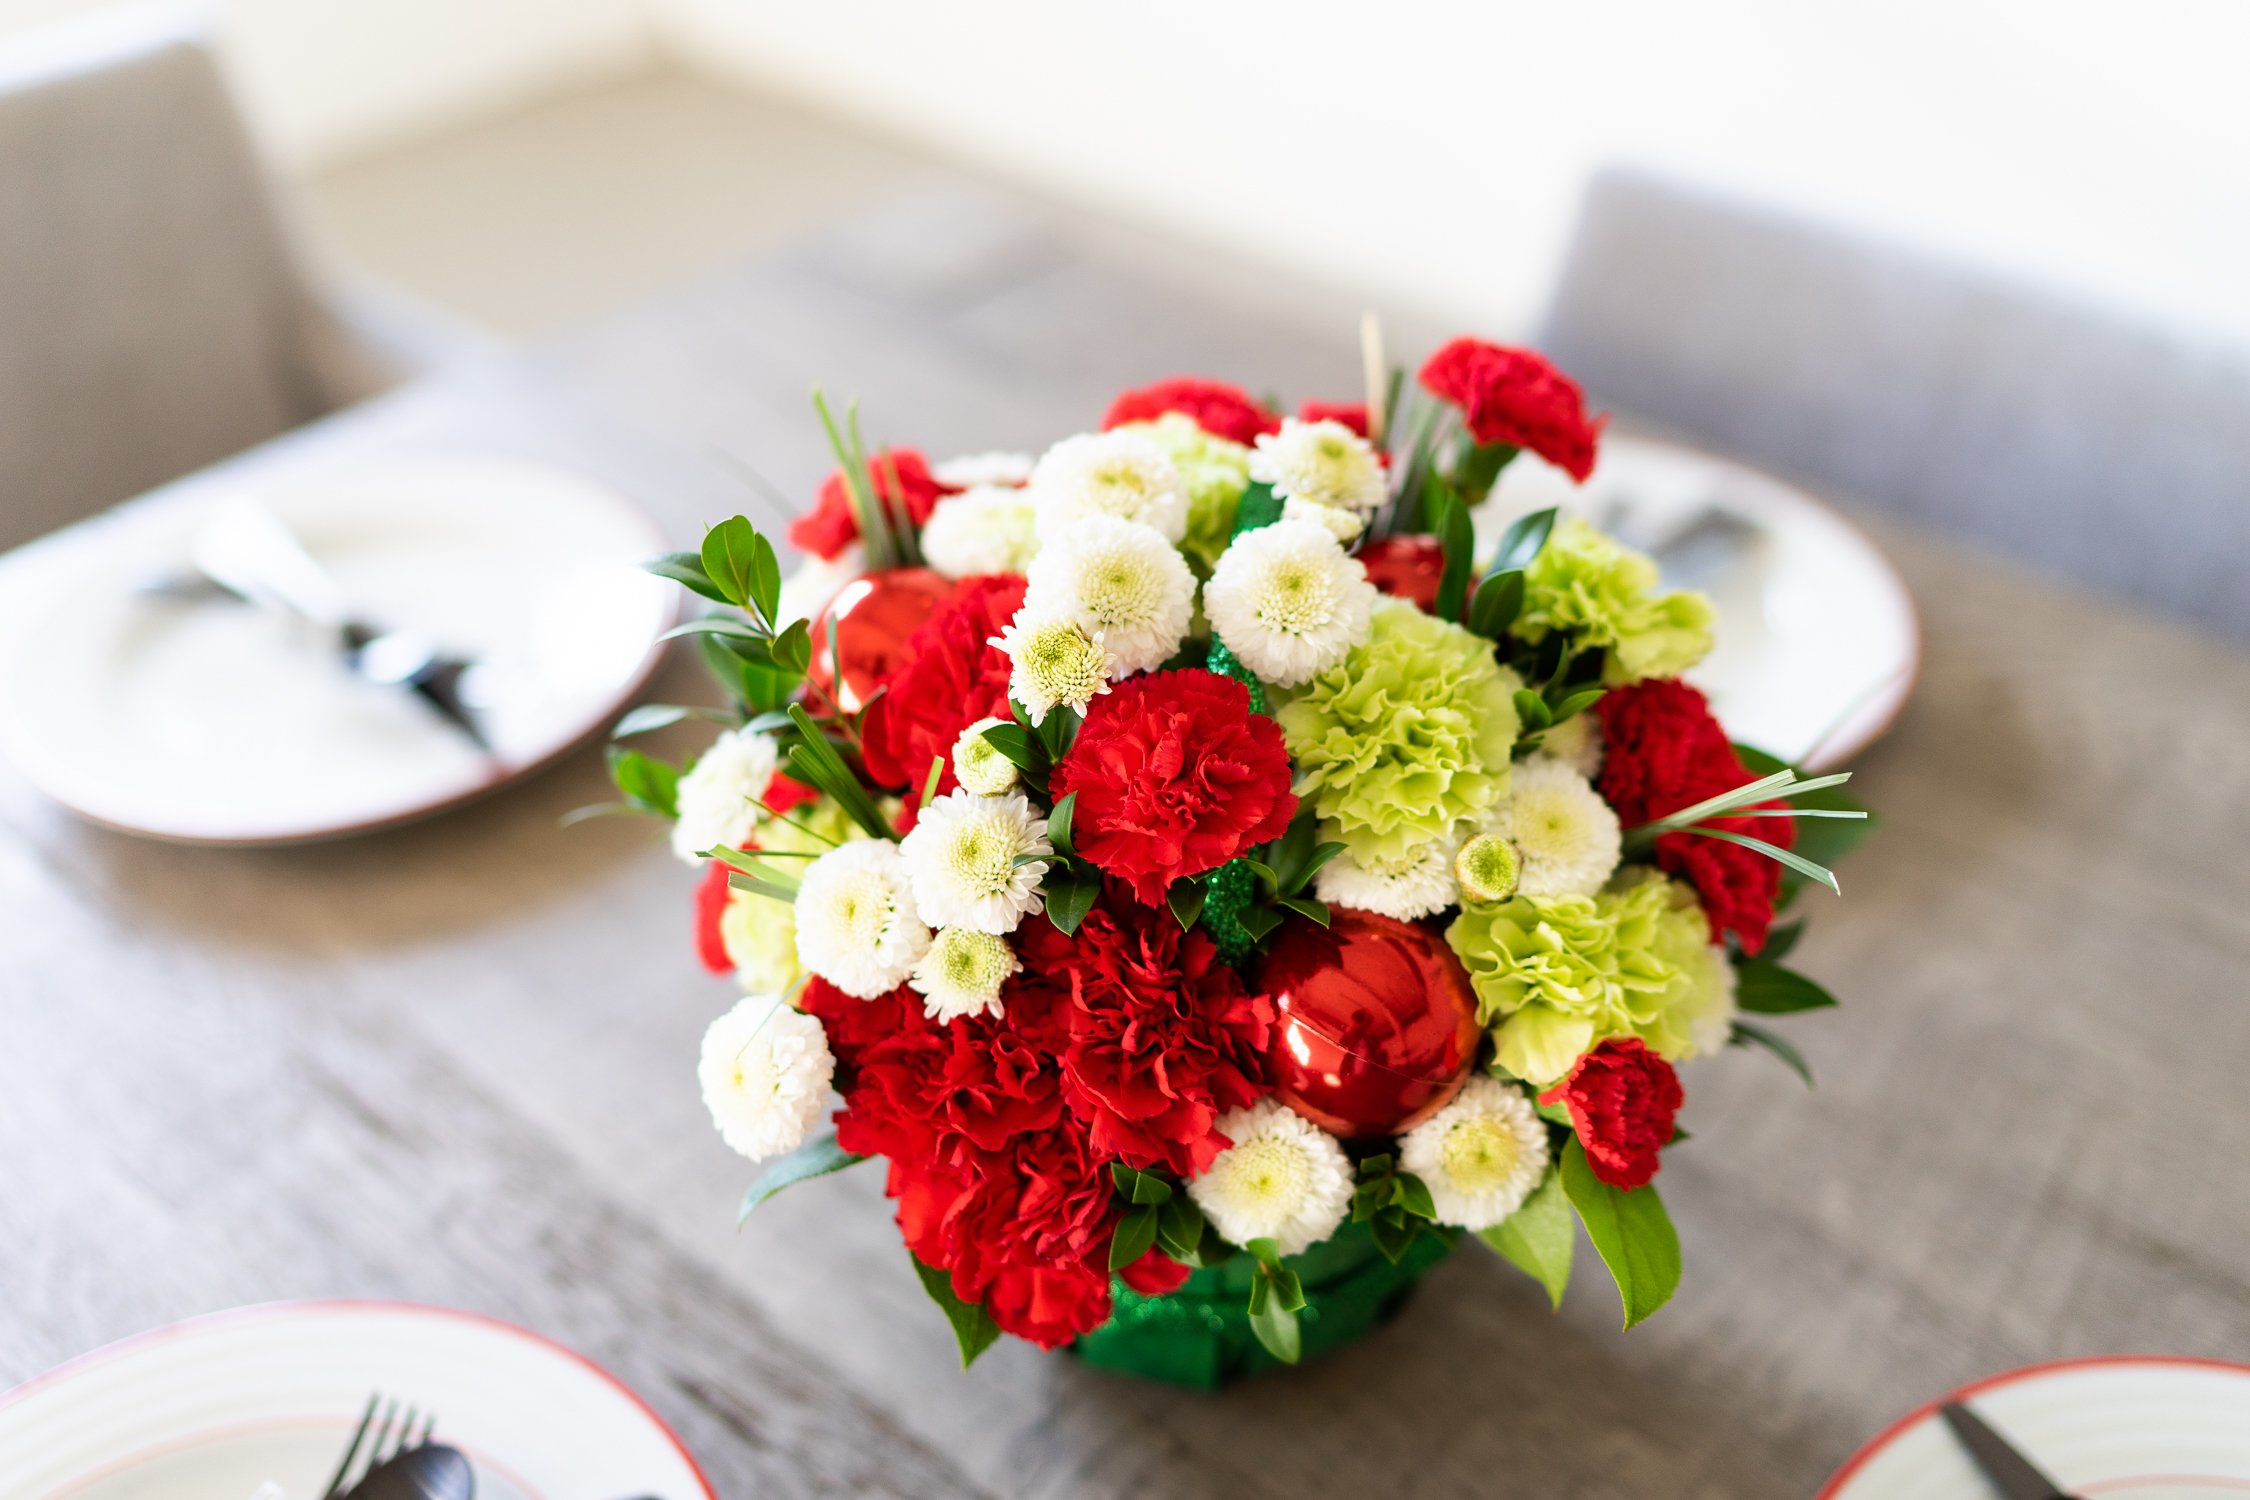 Holiday Centerpiece with Red, White and Green Flowers